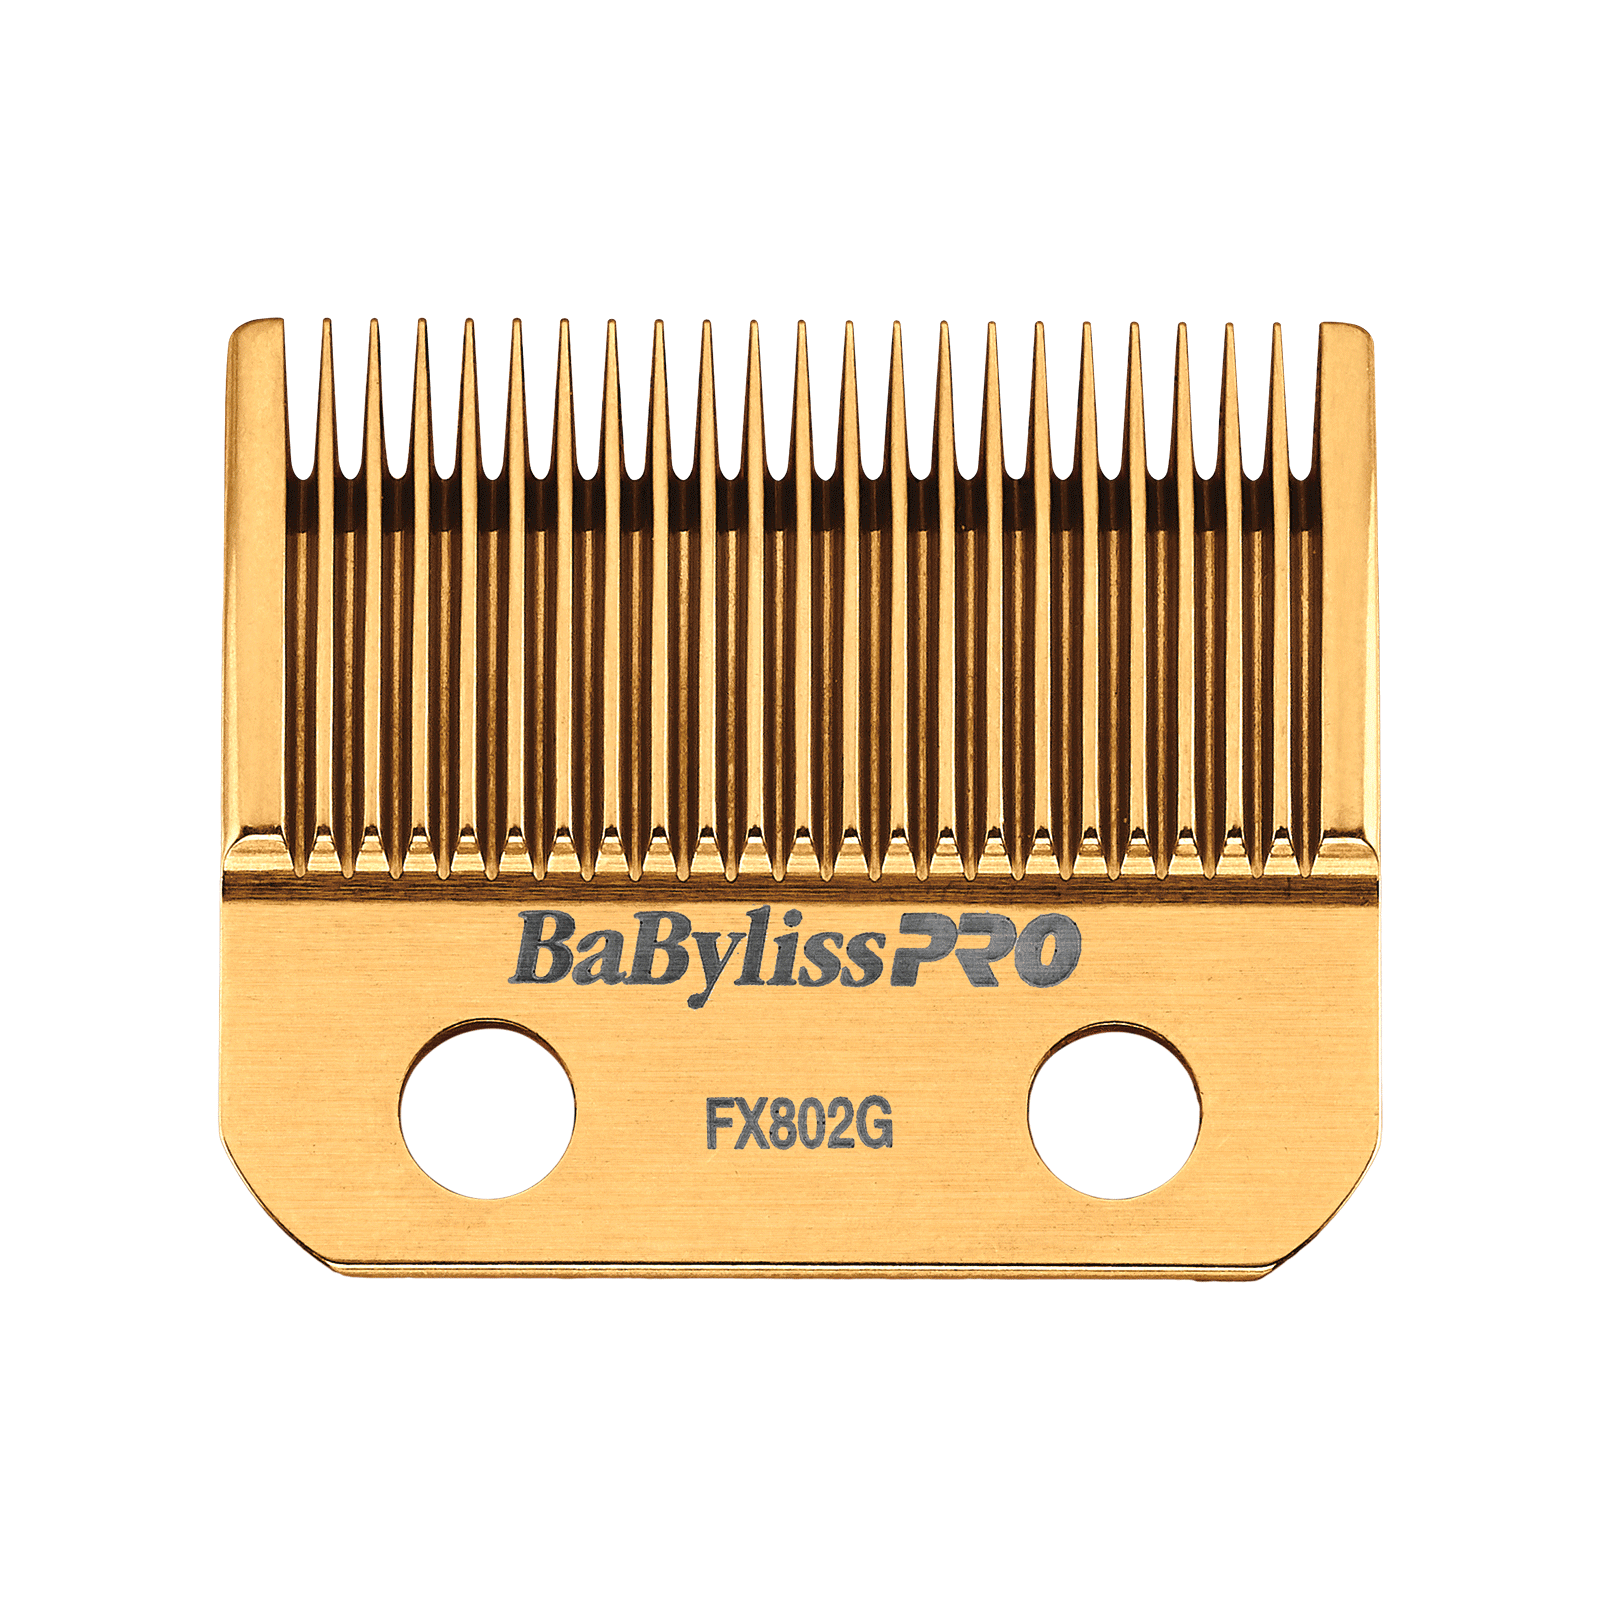 BaBylissPRO Replacement Blade for FXF880, FX870RG,FX870G